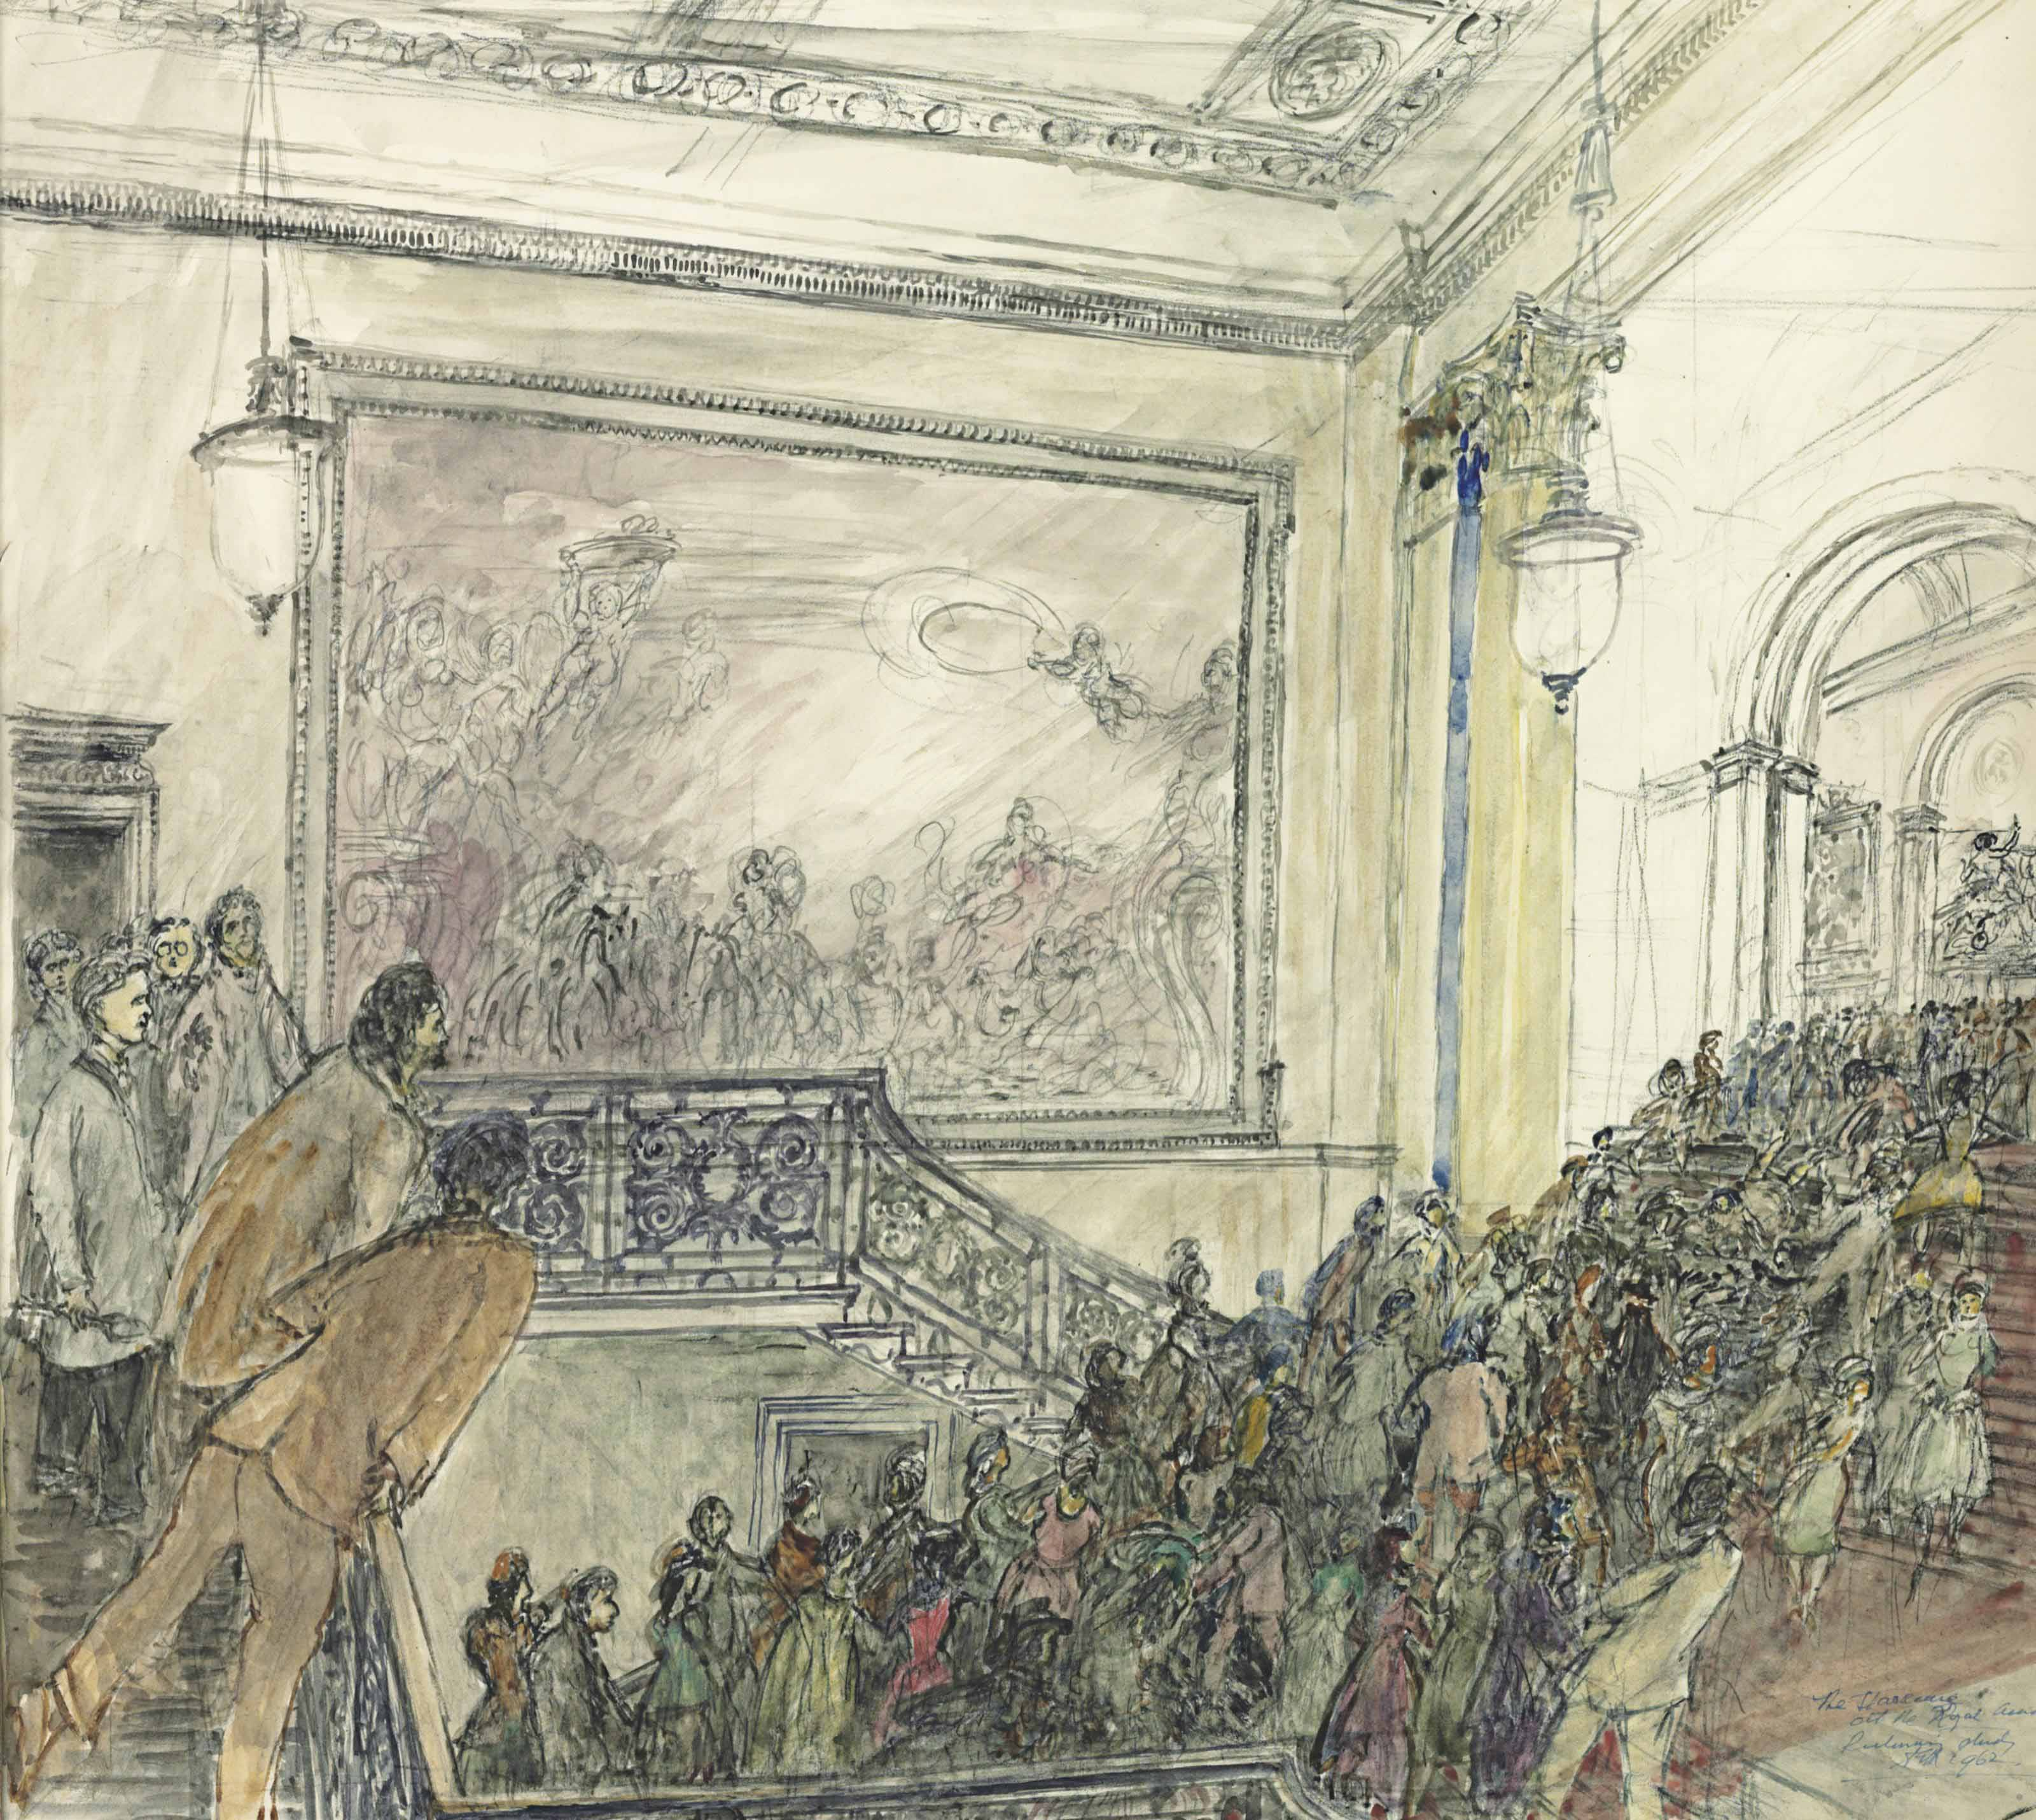 'The Starecase': The Royal Academy, a Private View, 1962